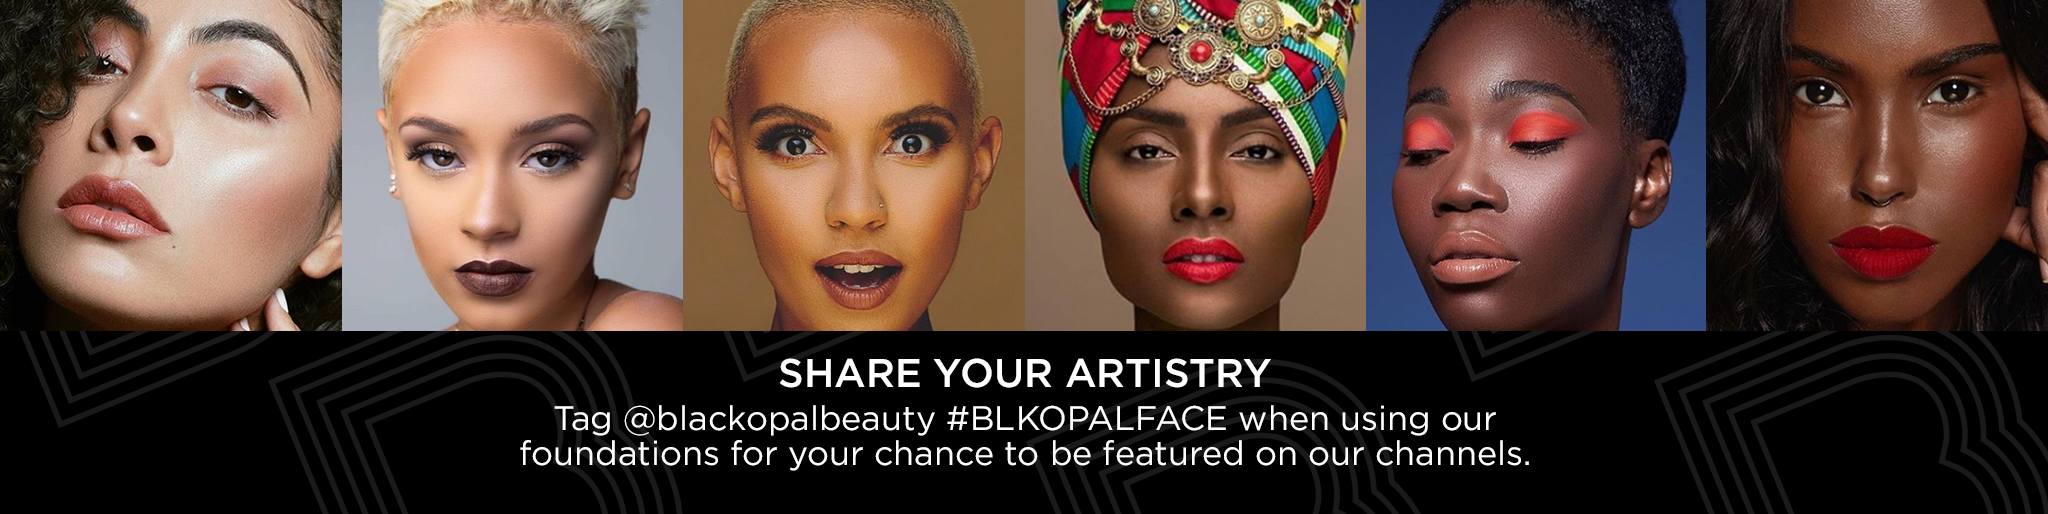 Eye Definition Share Your BLK/OPL Spring Beauty Looks. Tag @blackopalbeauty #BLKOPLSpring for a chance to be featured on our IG page.